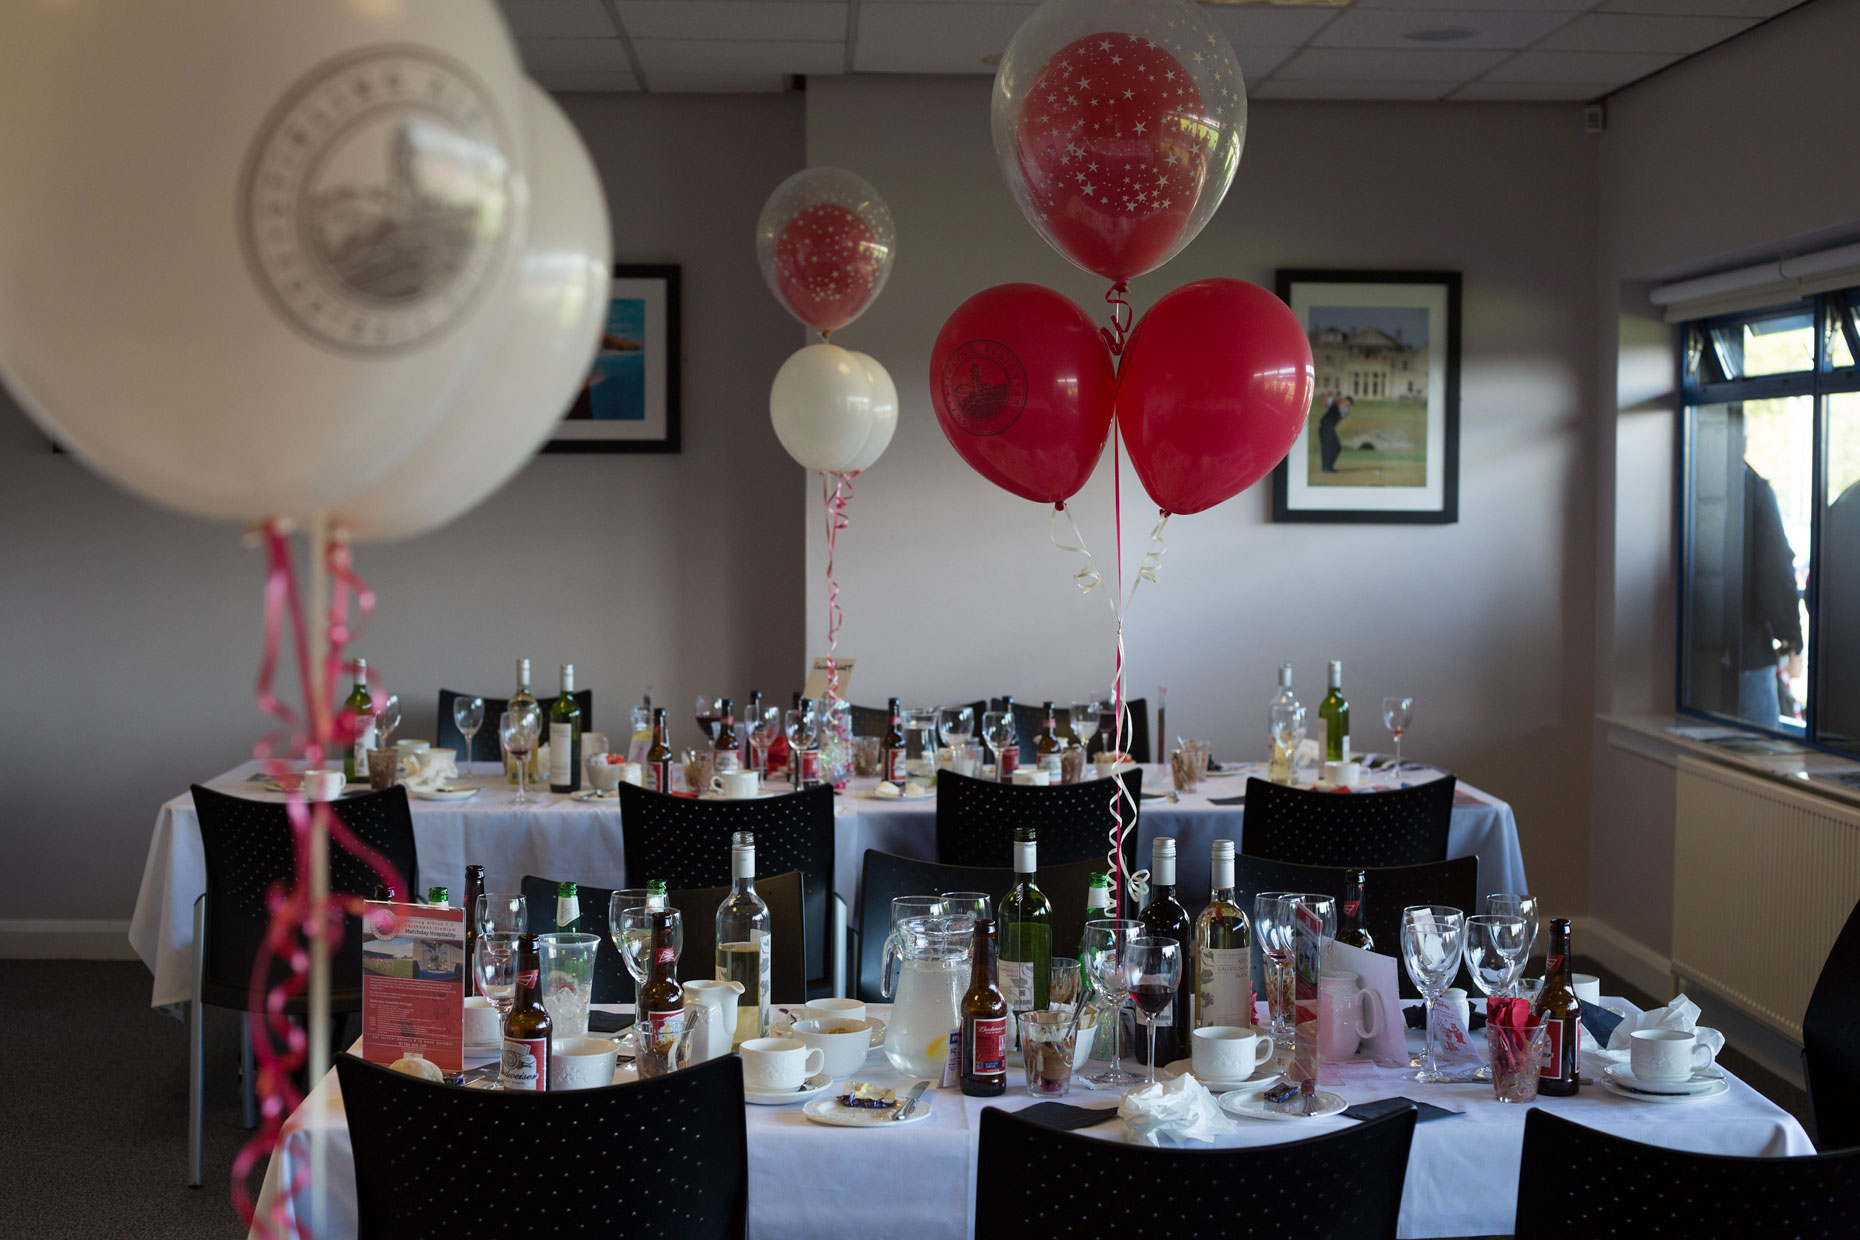 Ballons and dinner table at football club, Scotland, by photographer Sutton-Hibbert